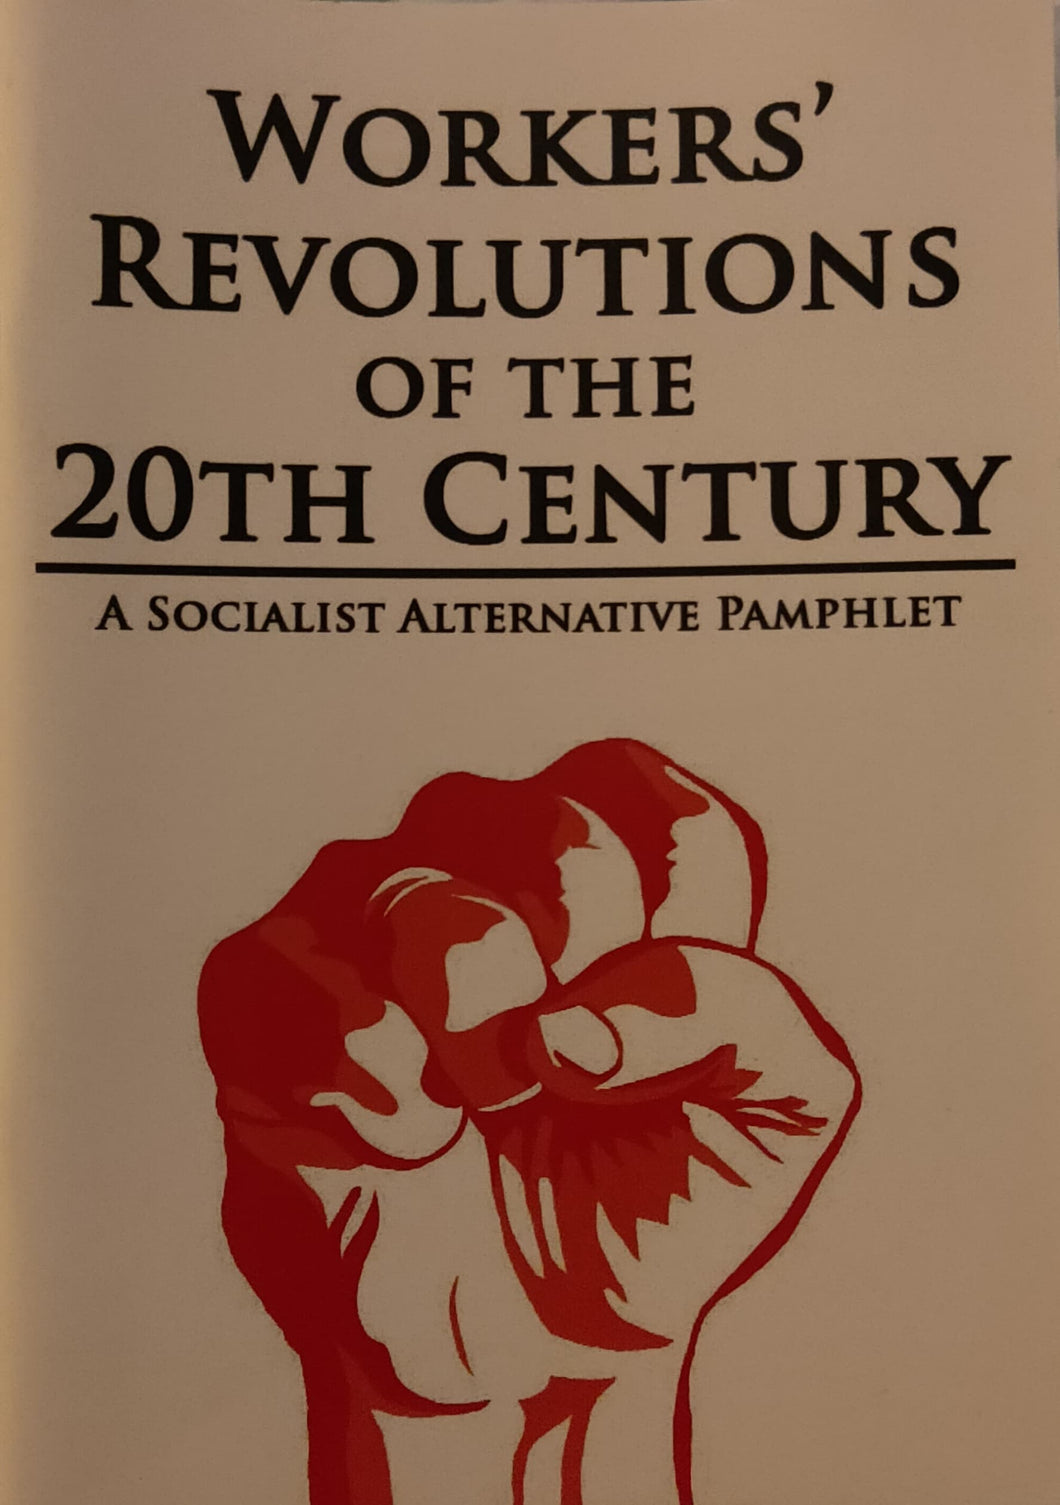 Workers' Revolutions of the 20th Century